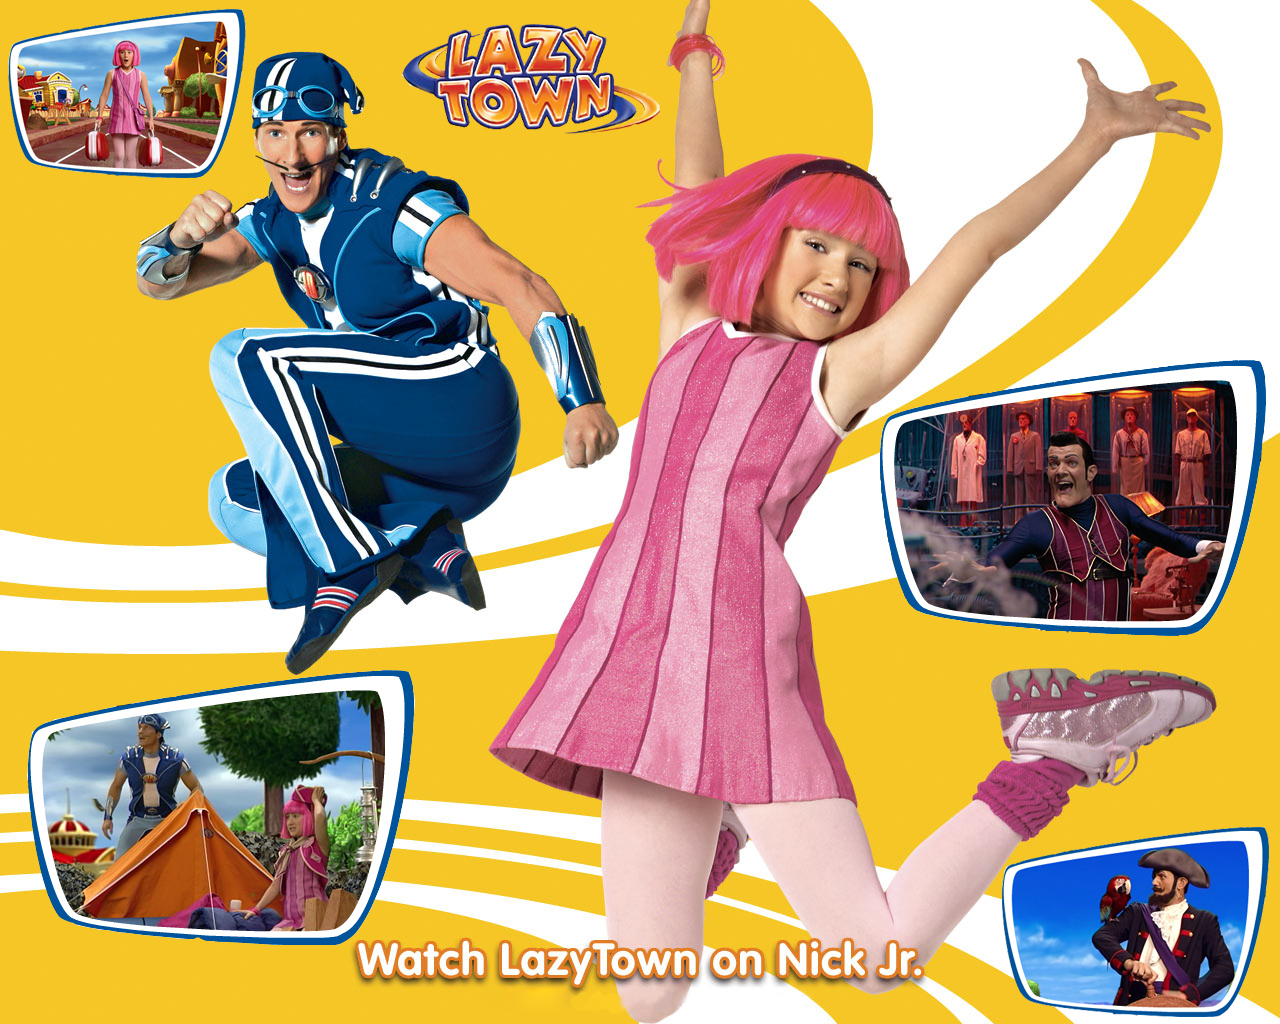 Free download lazy town nick jr wallpaperjpg [1280x1024] for your